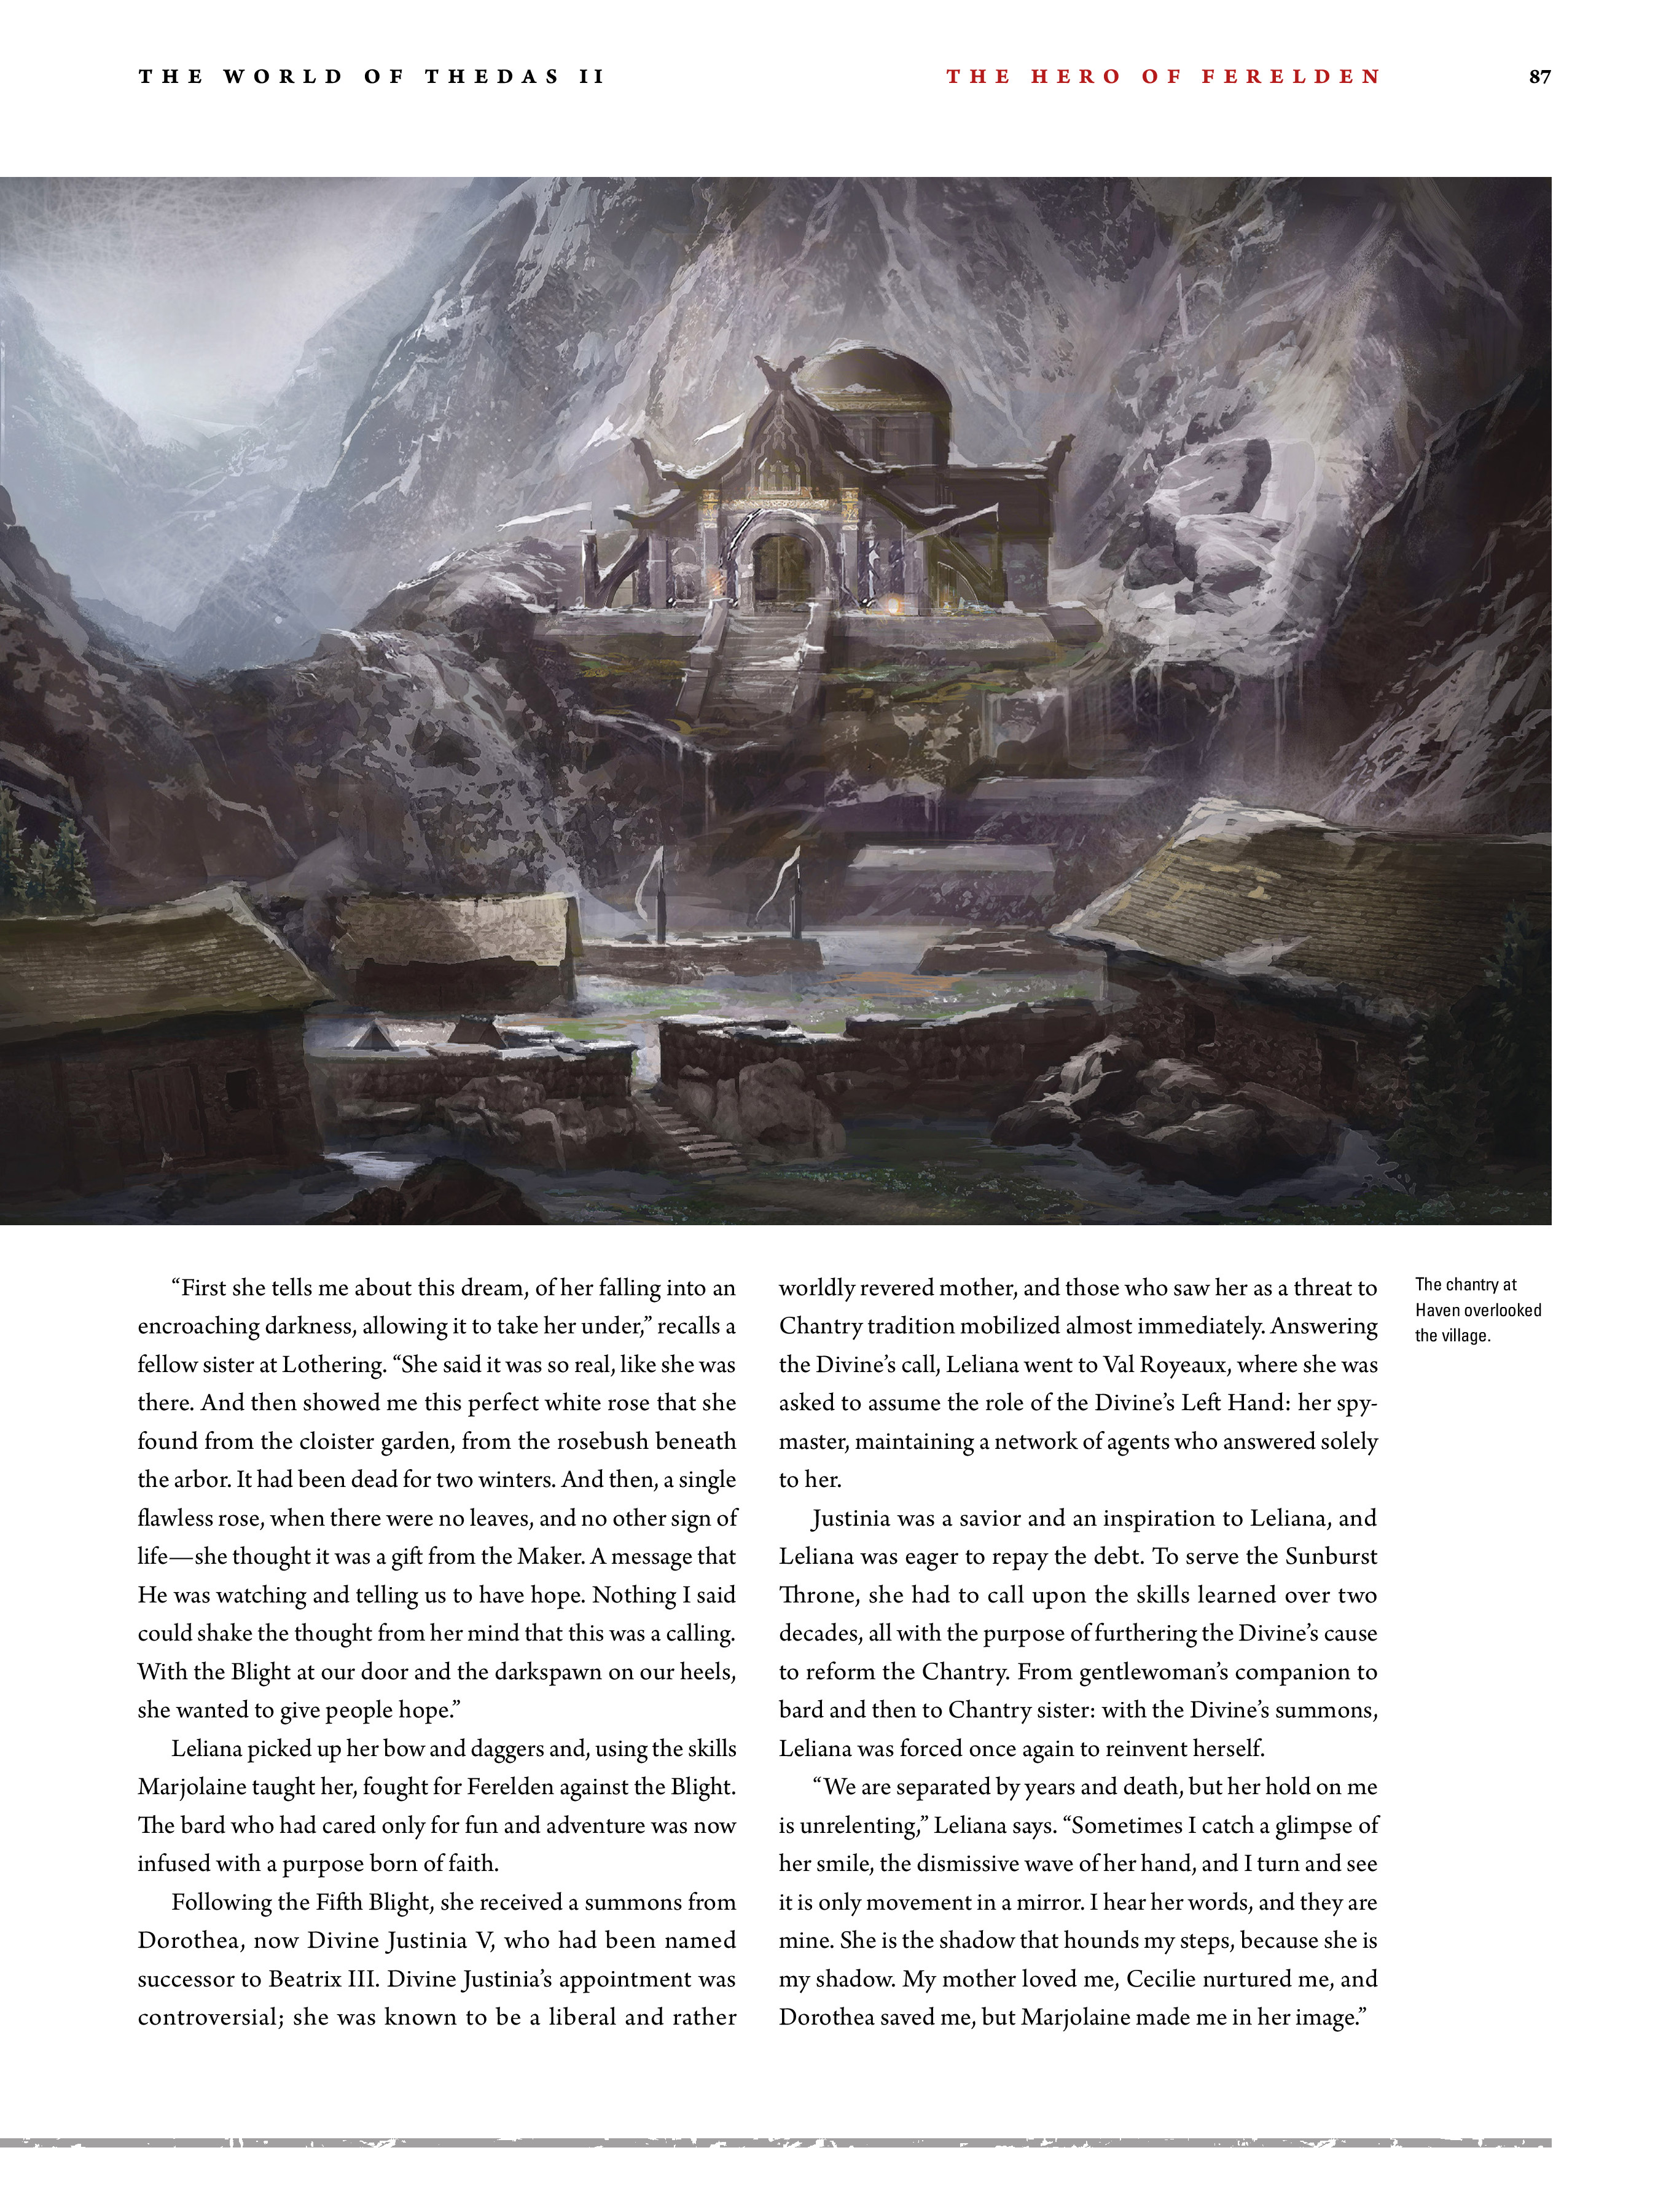 Read online Dragon Age: The World of Thedas comic -  Issue # TPB 2 - 83